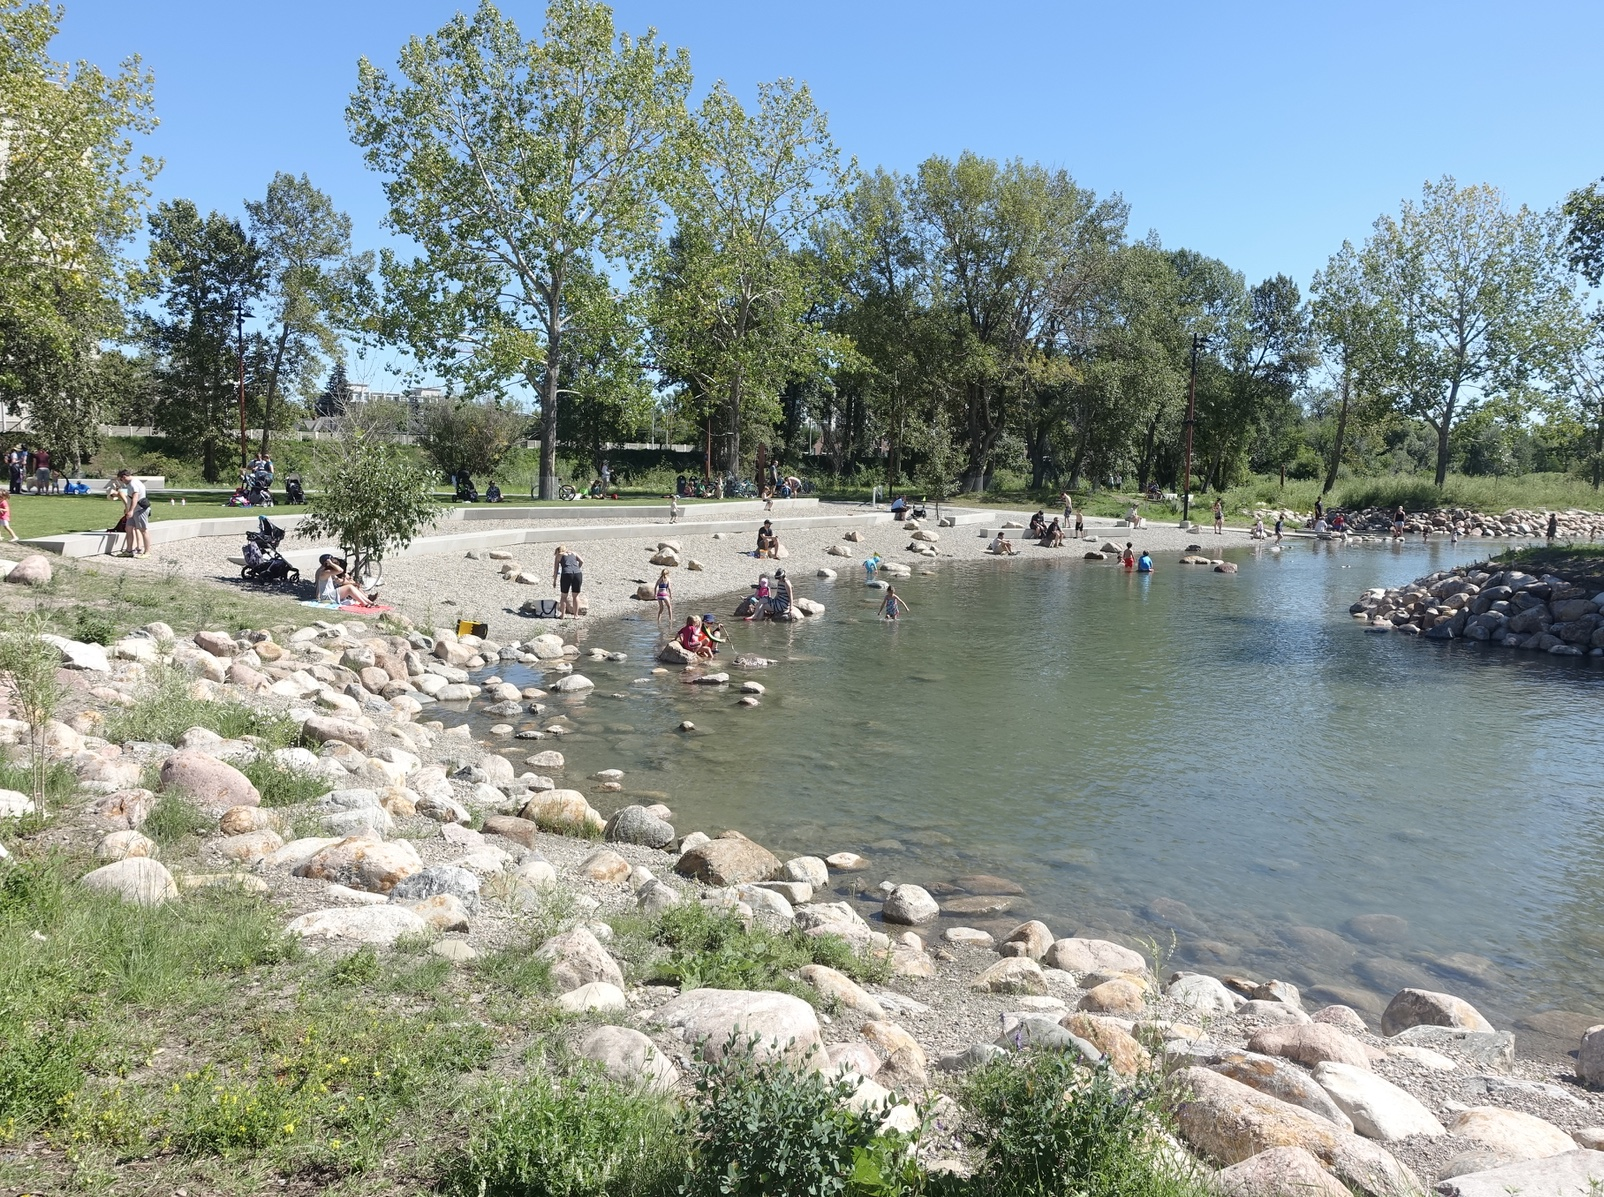 Calgary's newly revitalized St. Patrick's Island and Riverwalk leaves Edmonton's City Centre public spaces in the dust.